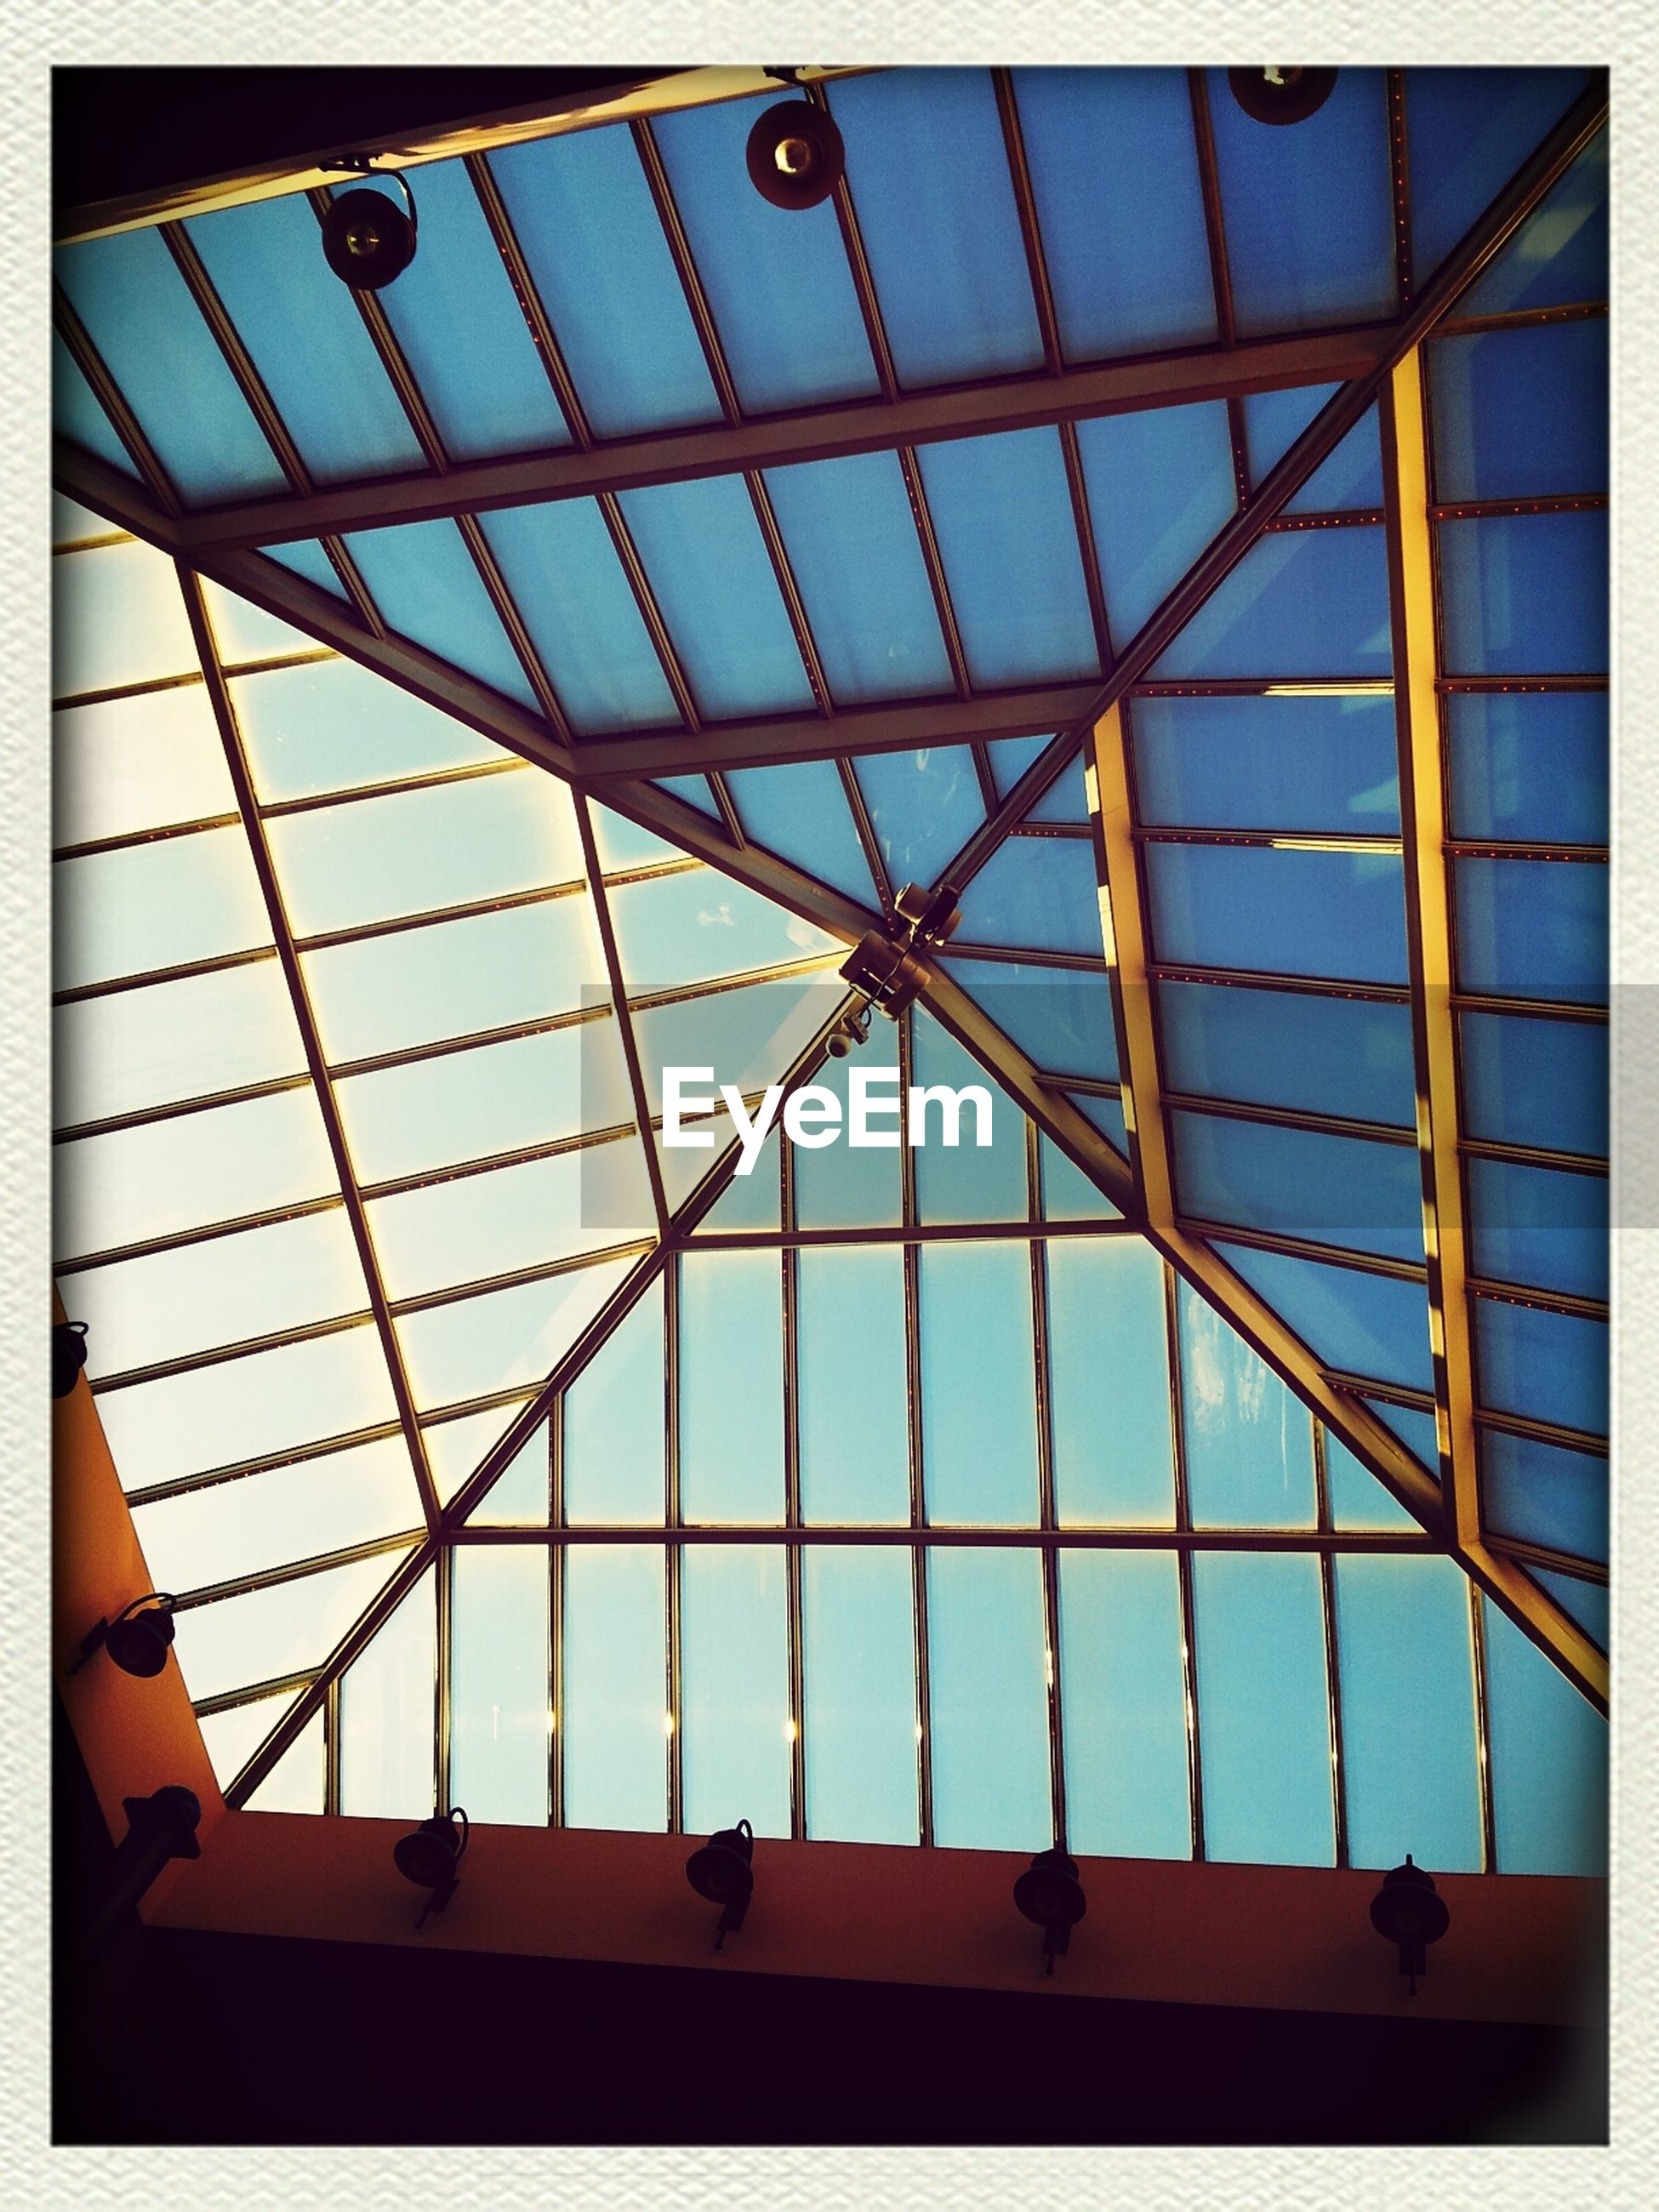 low angle view, architecture, built structure, indoors, glass - material, ceiling, pattern, transfer print, modern, geometric shape, sky, skylight, auto post production filter, building exterior, transparent, architectural feature, grid, window, glass, day